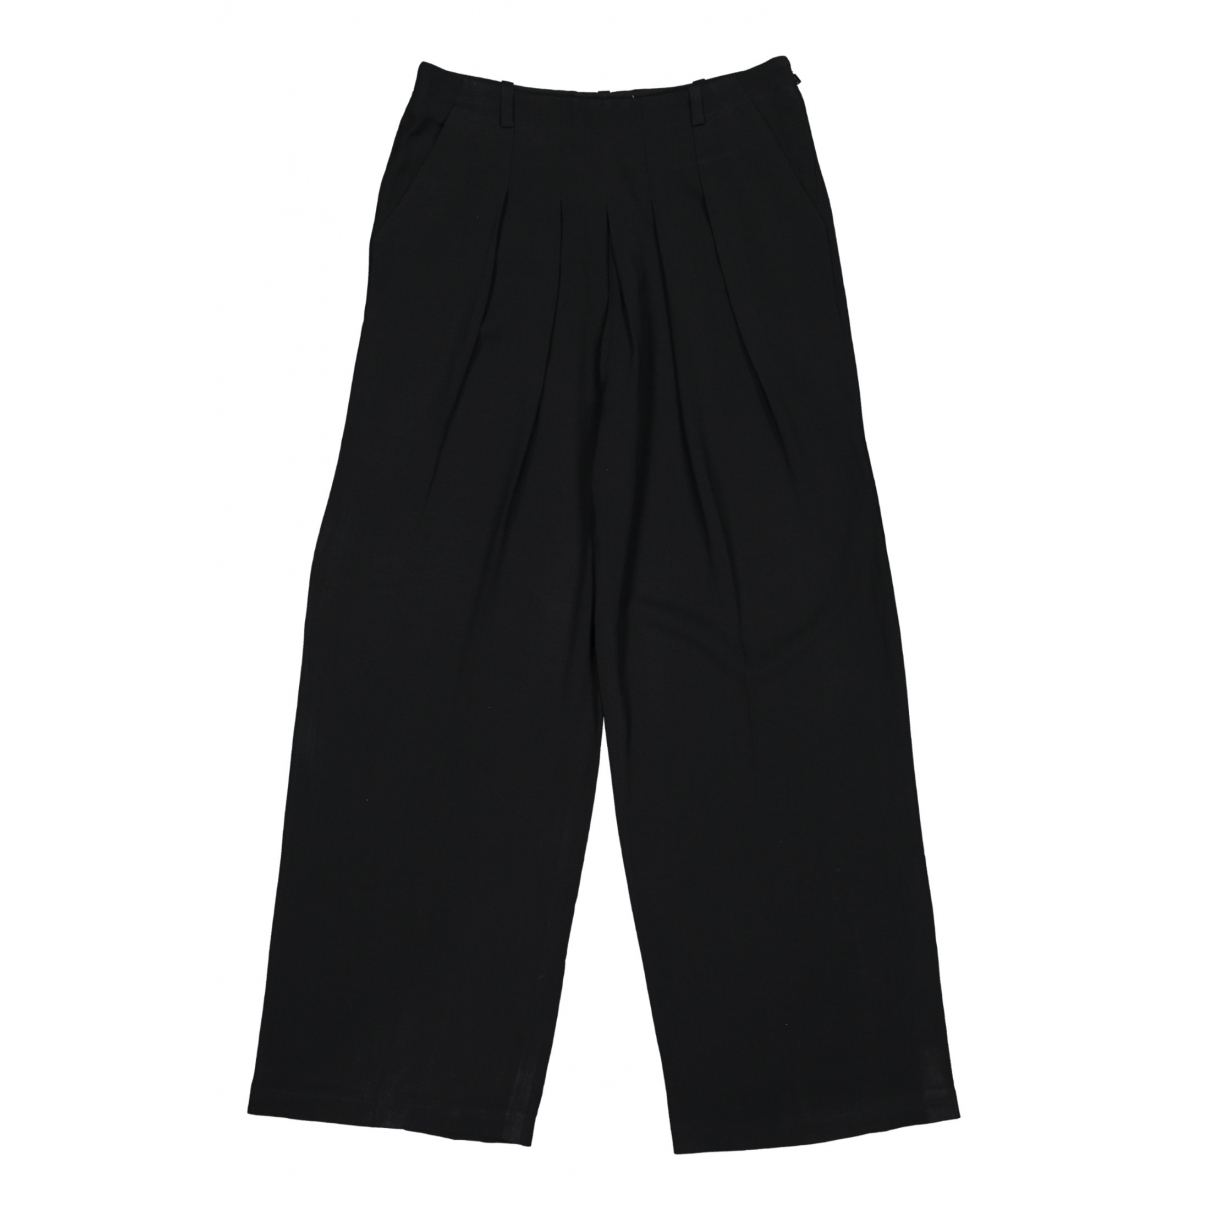 Chloé N Black Trousers for Women 40 FR